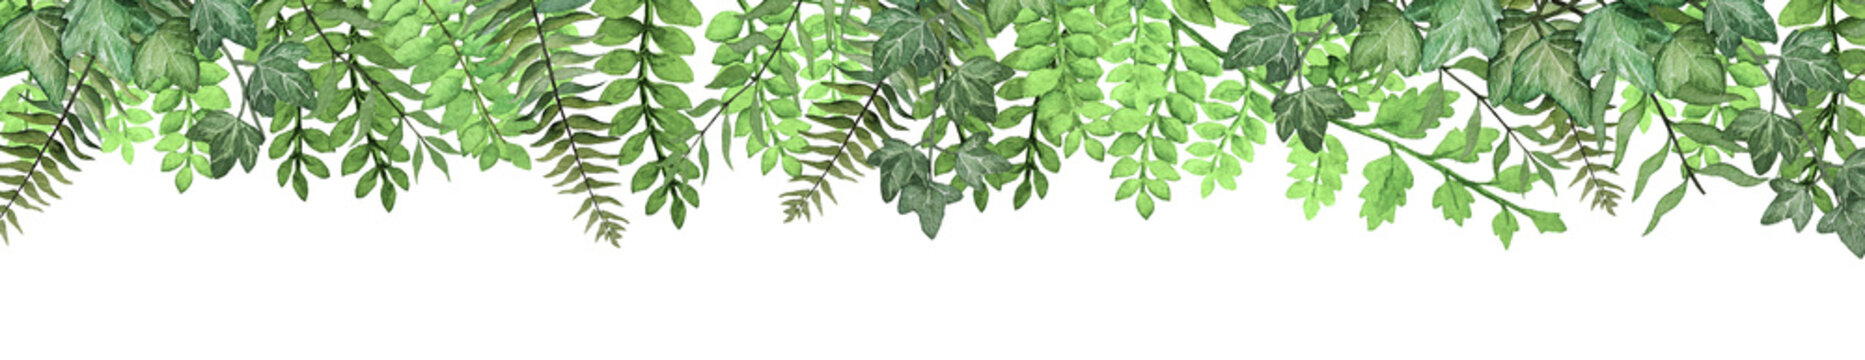 Long banner with hand drawn watercolor tropical fern leaves